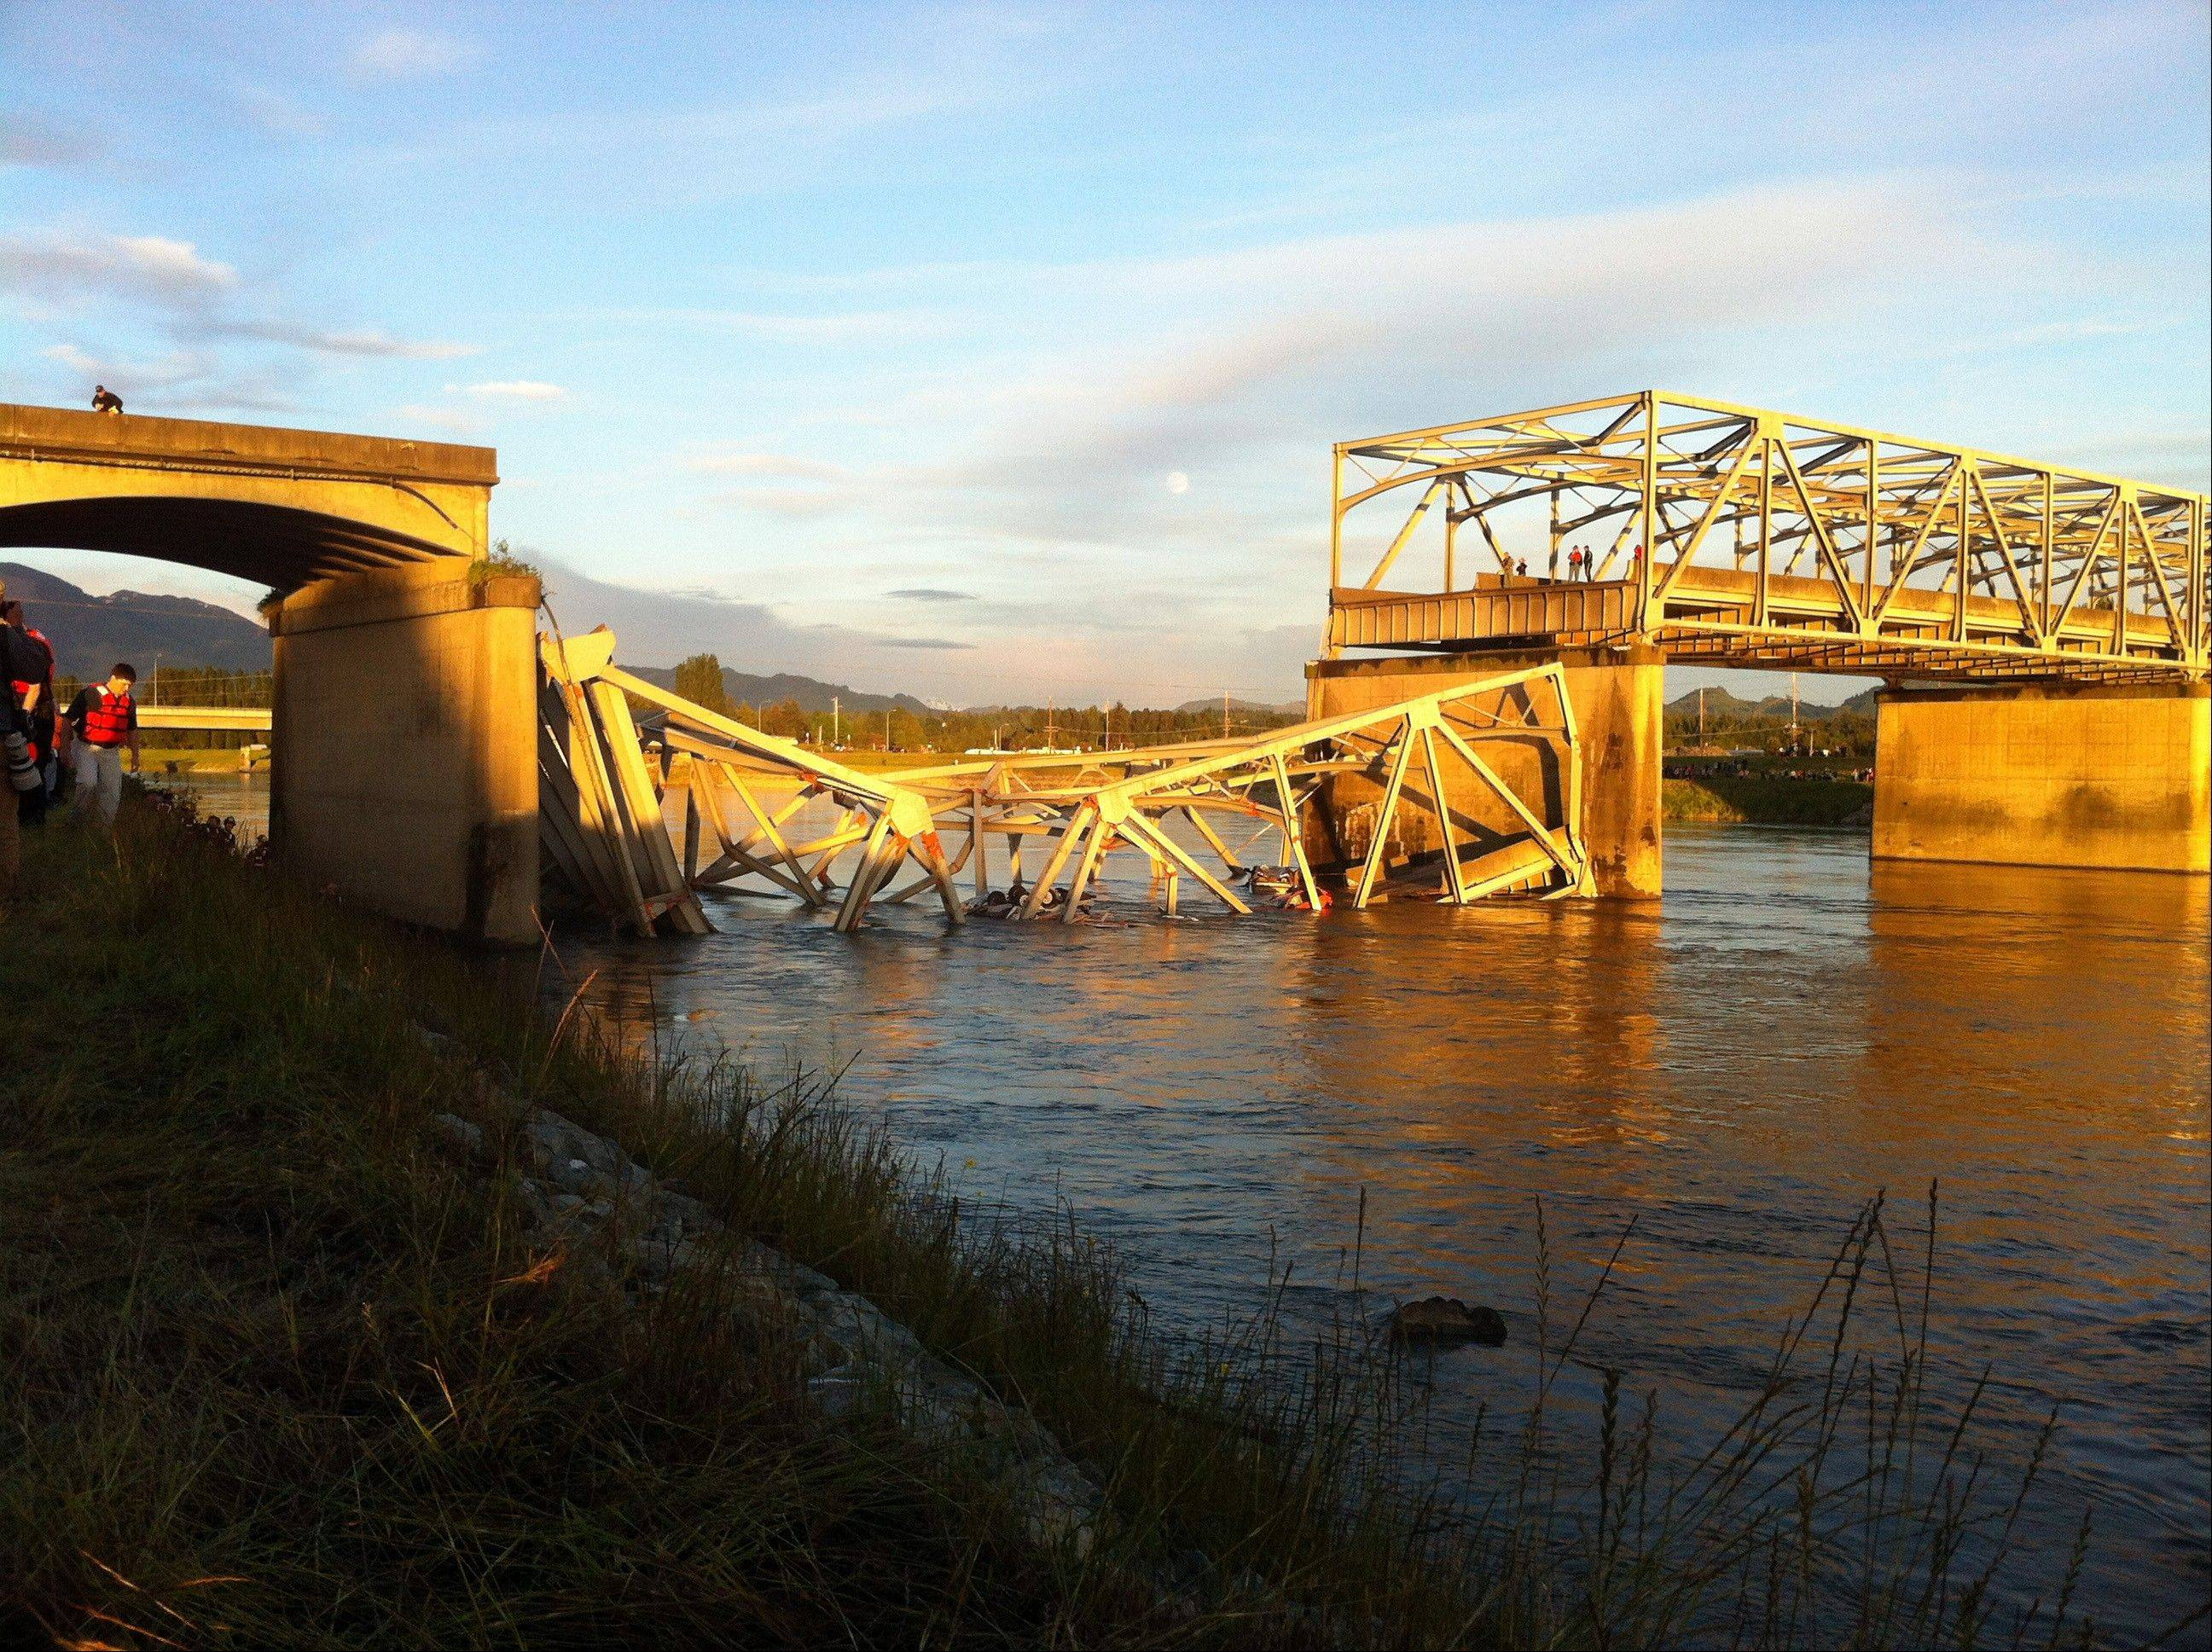 A portion of the Interstate 5 bridge is submerged after it collapsed into the Skagit River dumping vehicles and people into the water in Mount Vernon, Wash., Thursday, May 23, 2013 according to the Washington State Patrol.